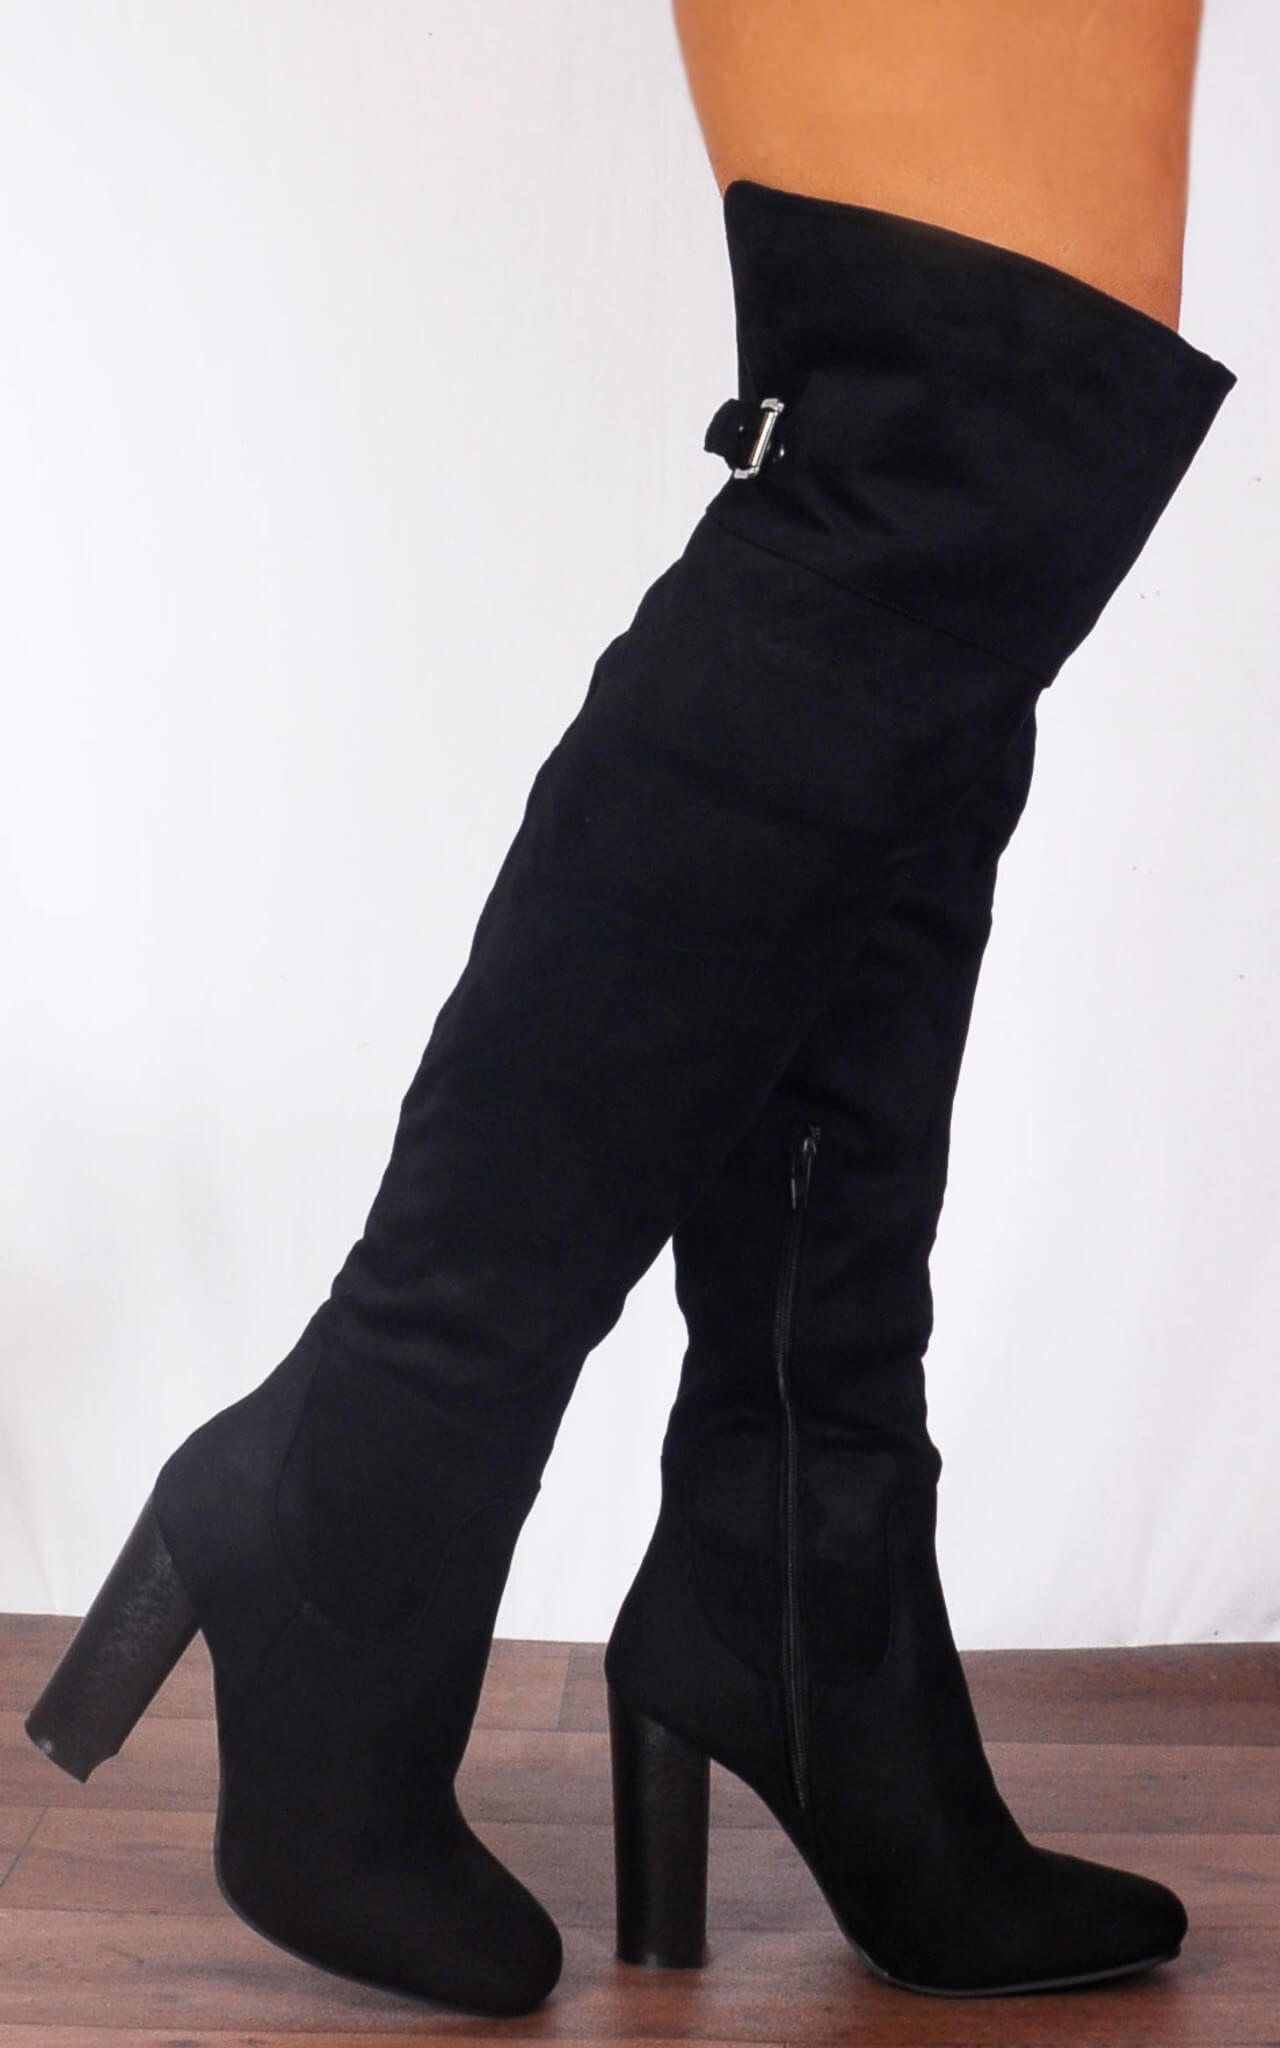 Model wears a black over the knee boot with buckle